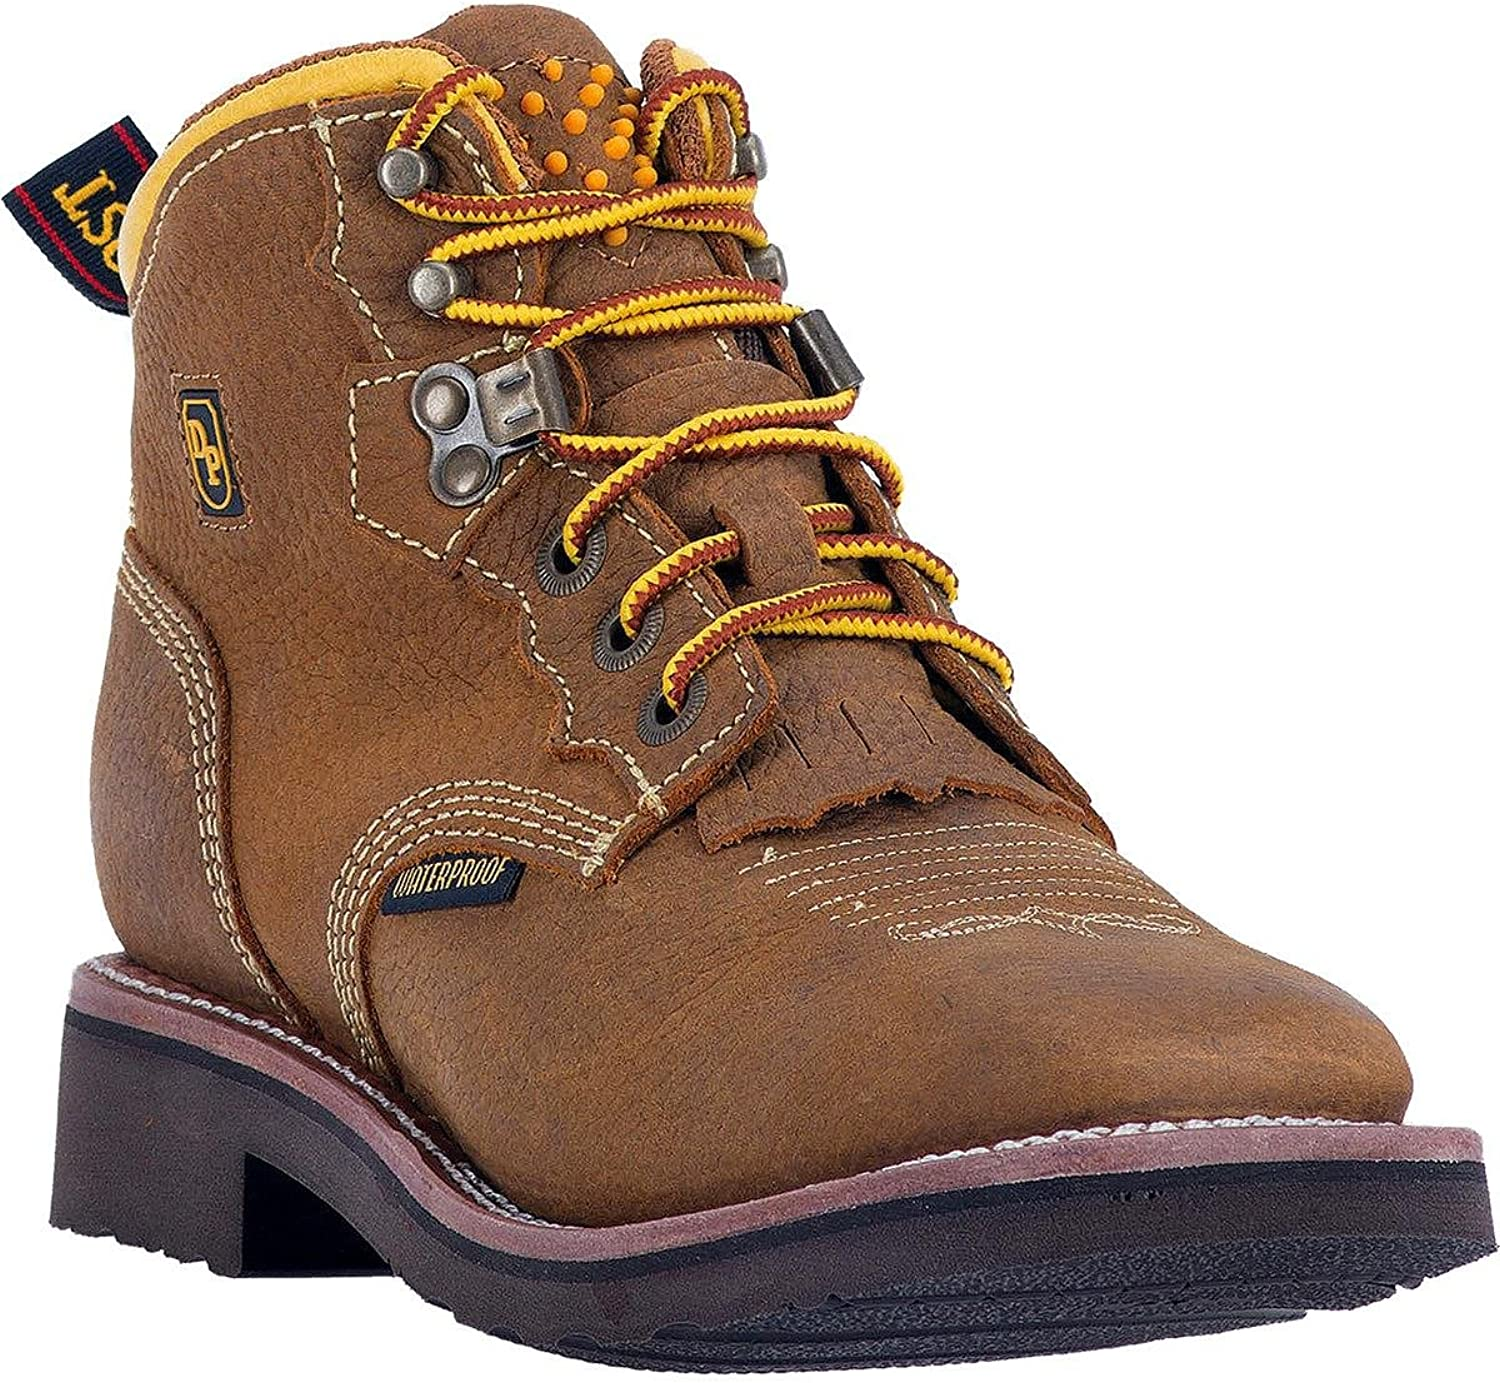 Dan Post Boots Women's Mesa Logger Boots DP59442